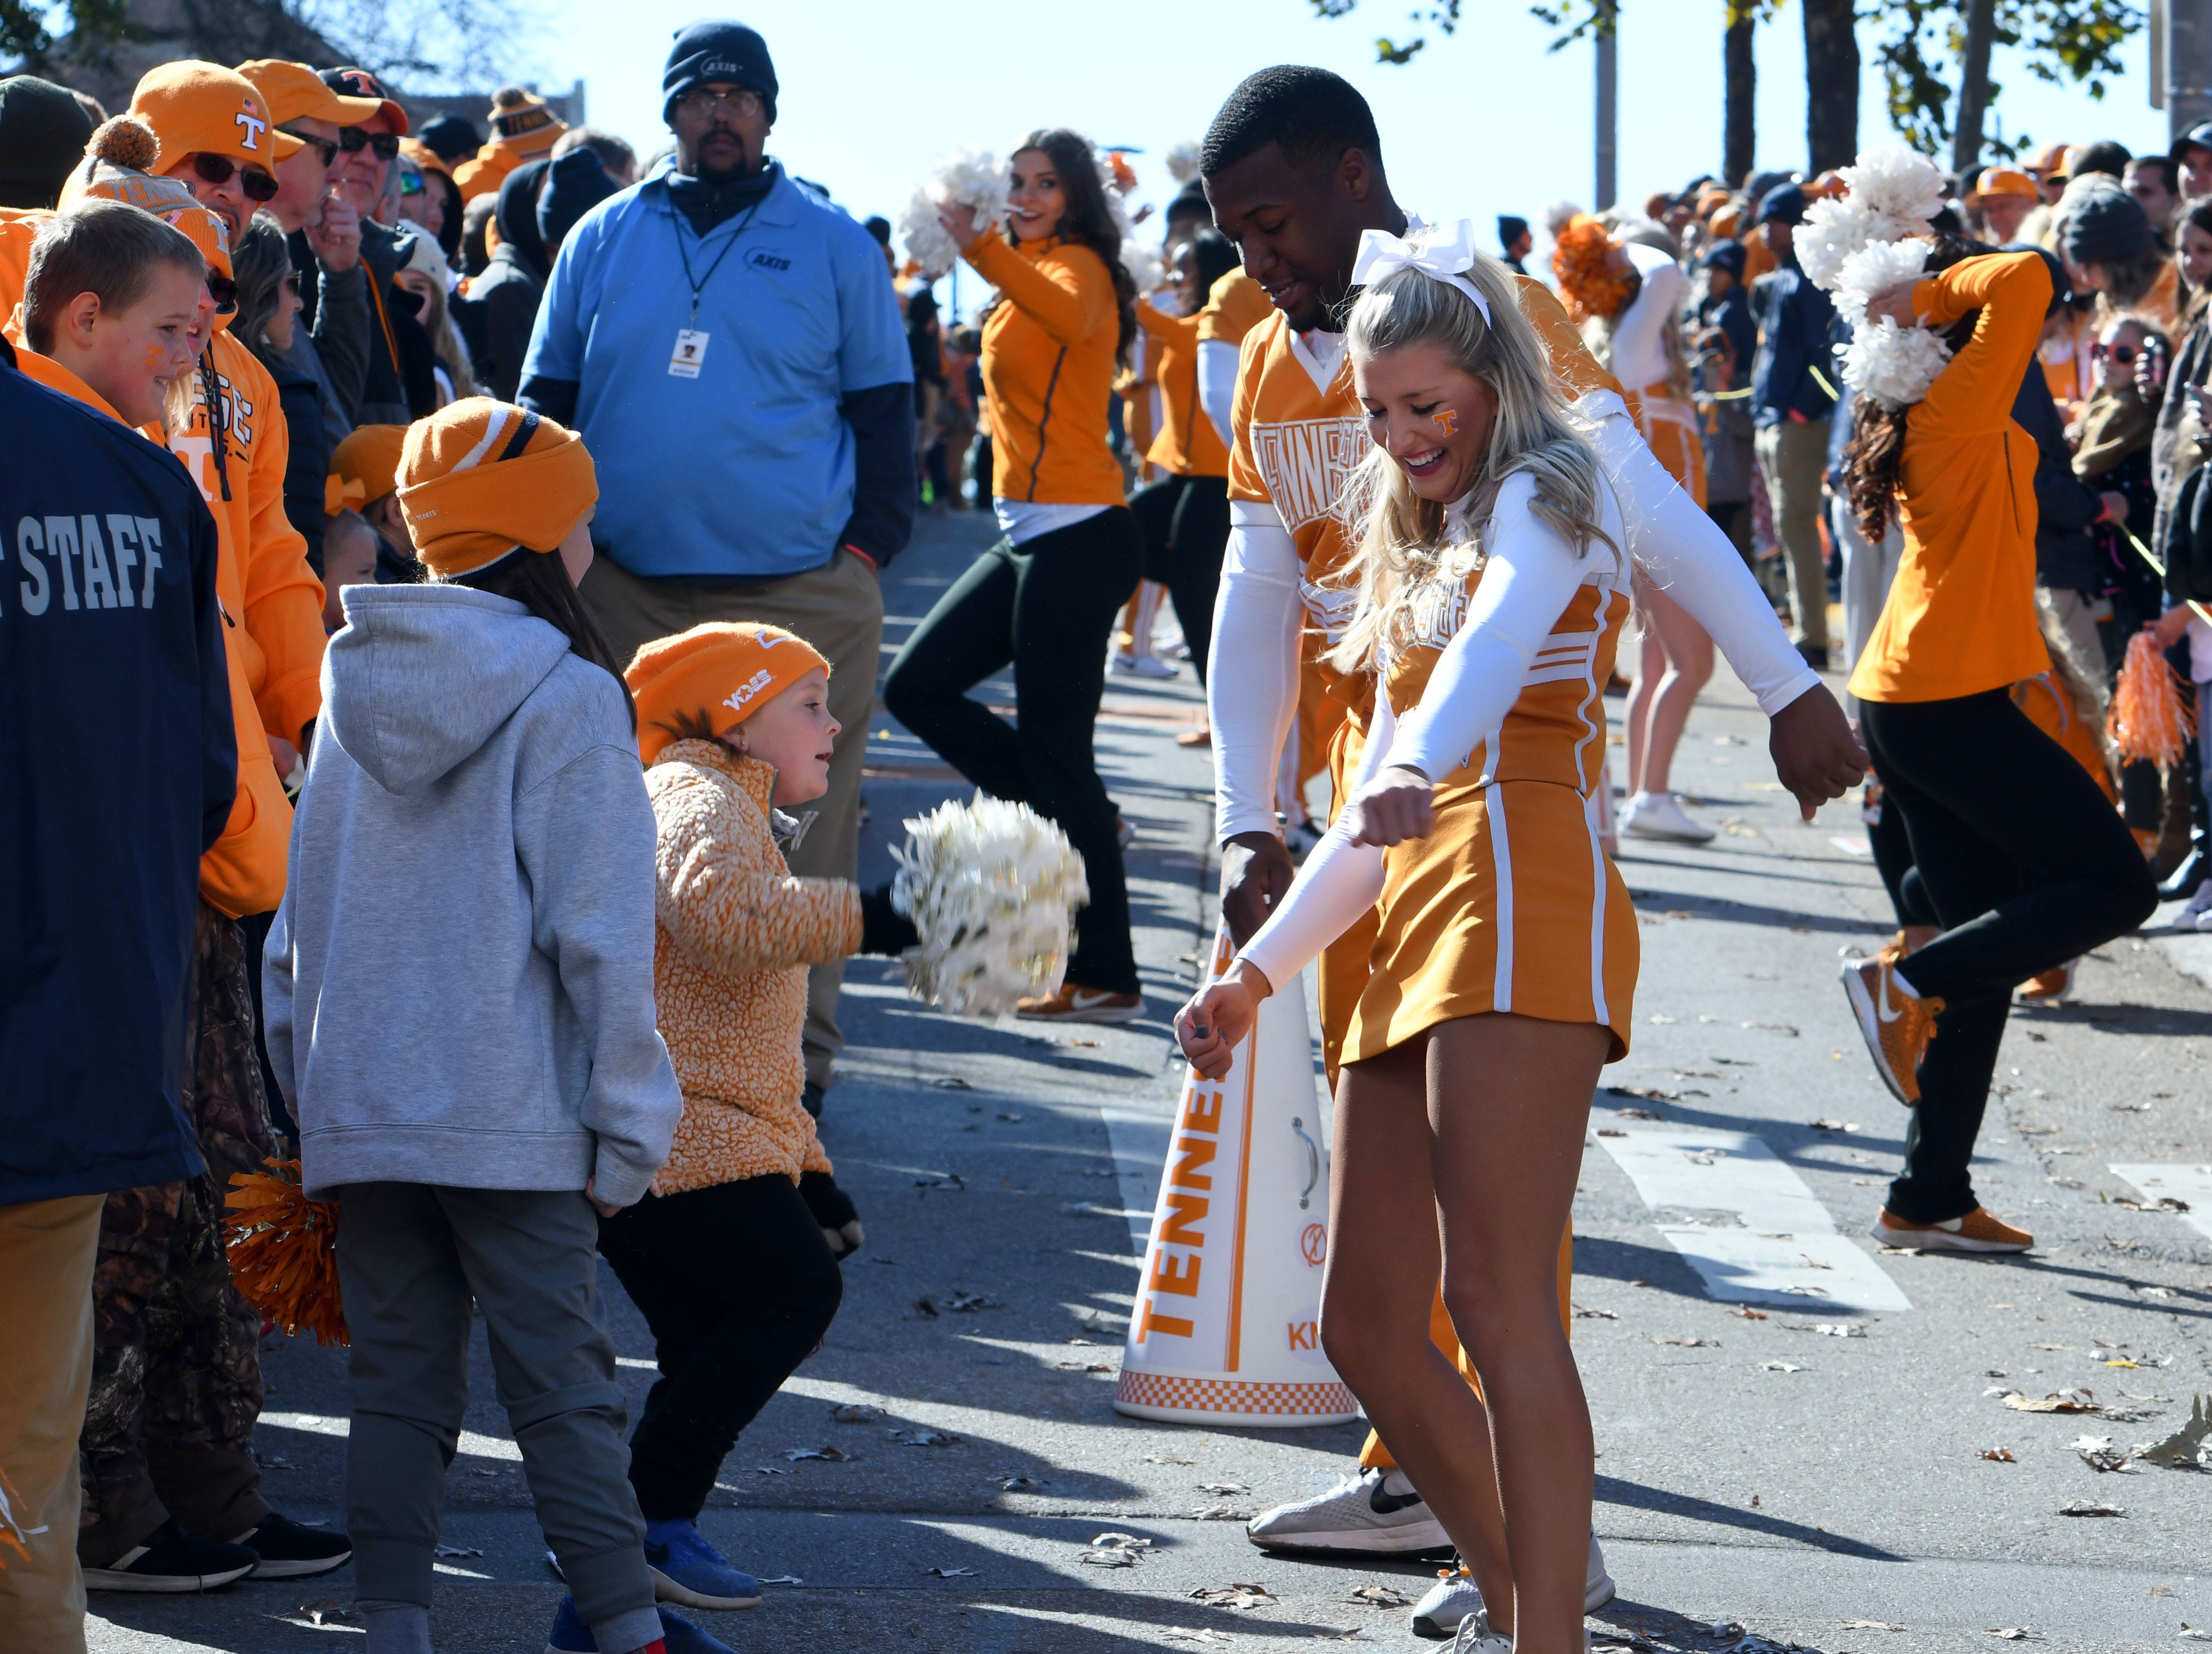 Tennessee cheerleaders dancing with fans during the Vol Walk before the Kentucky game Saturday, November 10, 2018 at Neyland Stadium in Knoxville, Tenn.